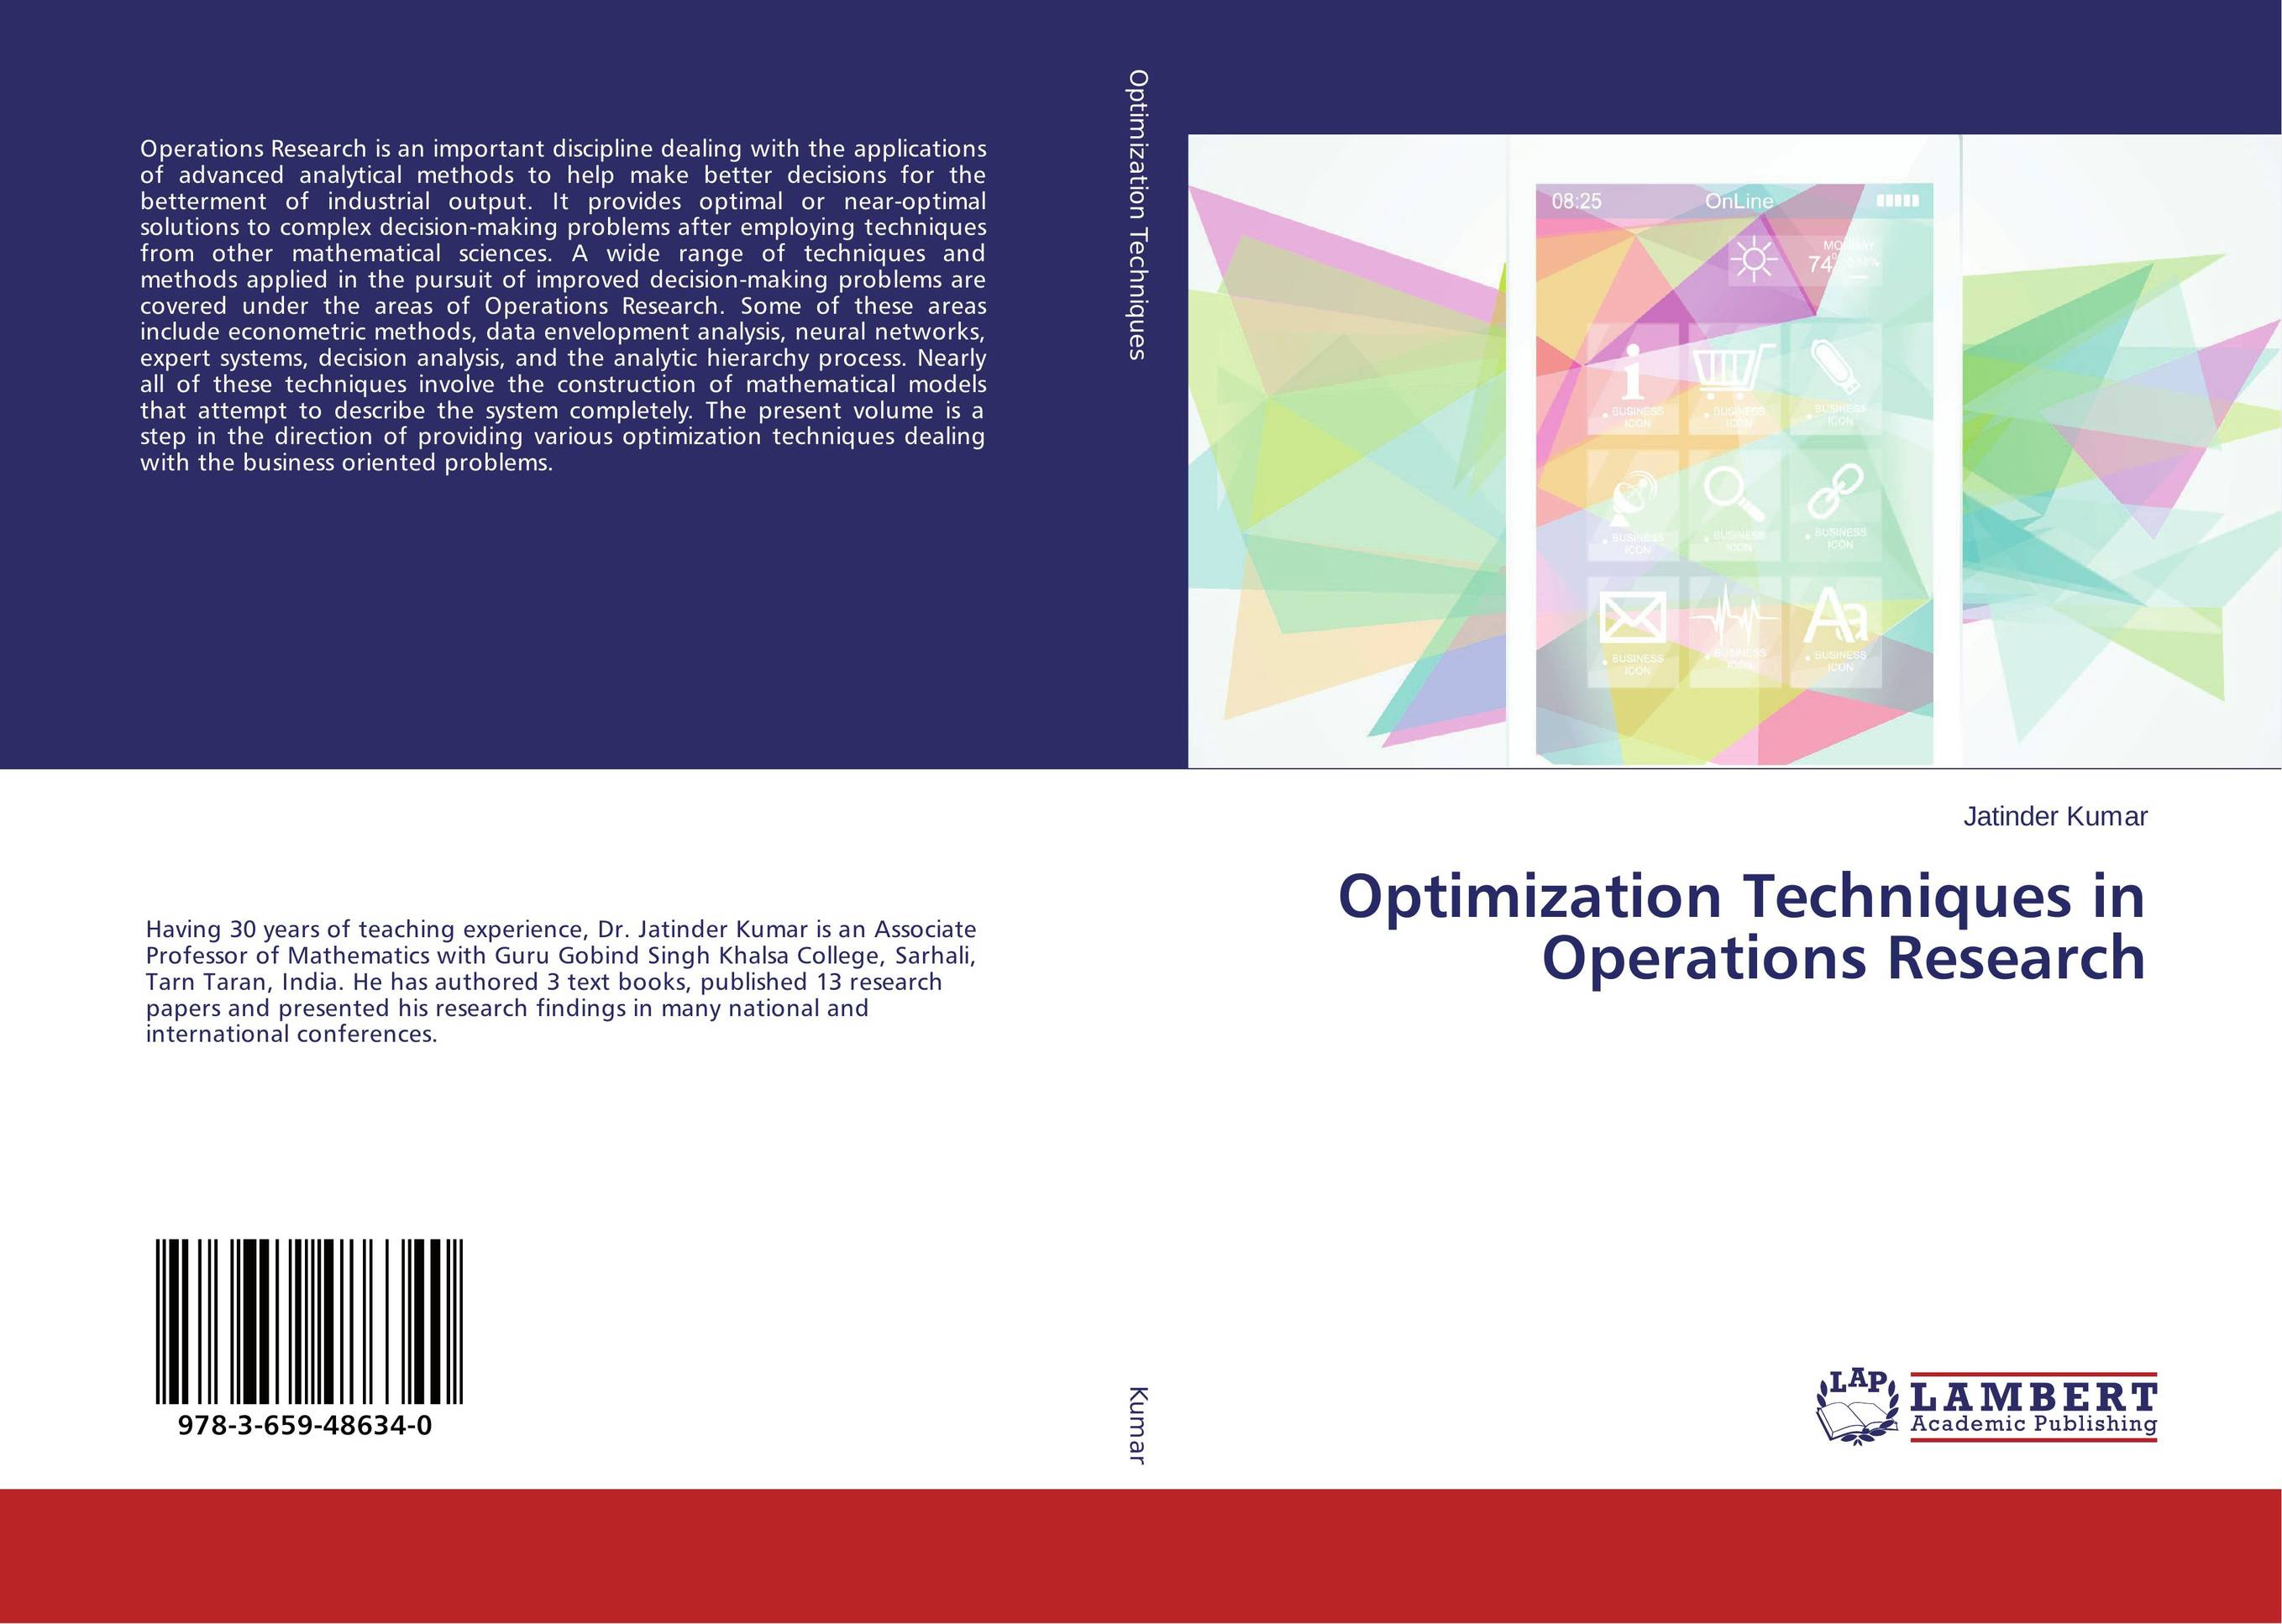 Optimization Techniques in Operations Research harvard business review hbr using logical techniques to making better decisions